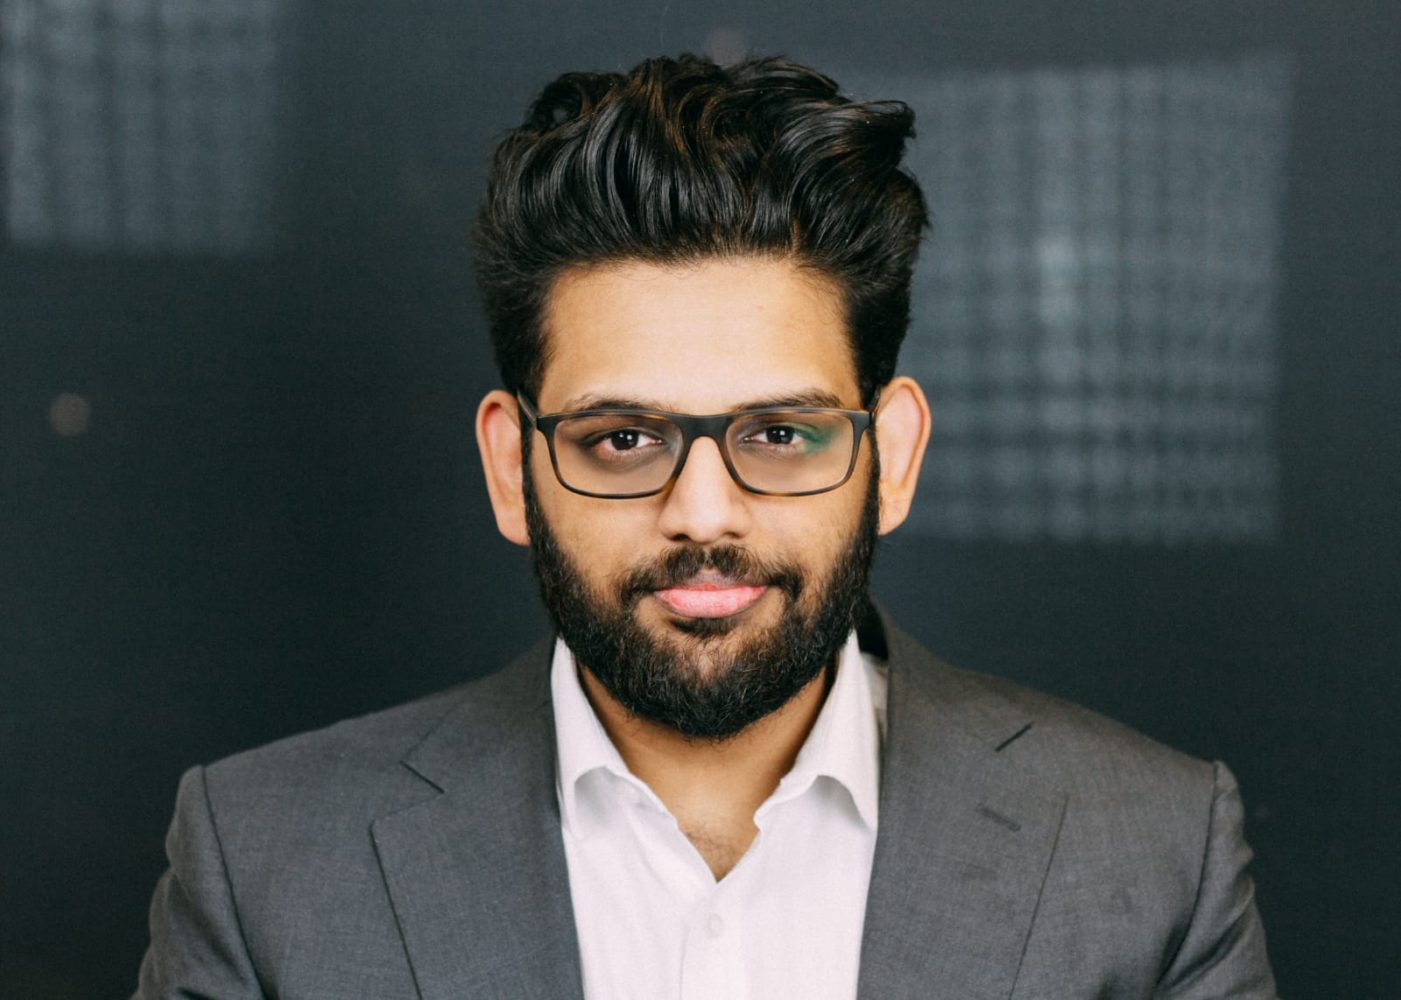 Lyric Jain, CEO of Logically